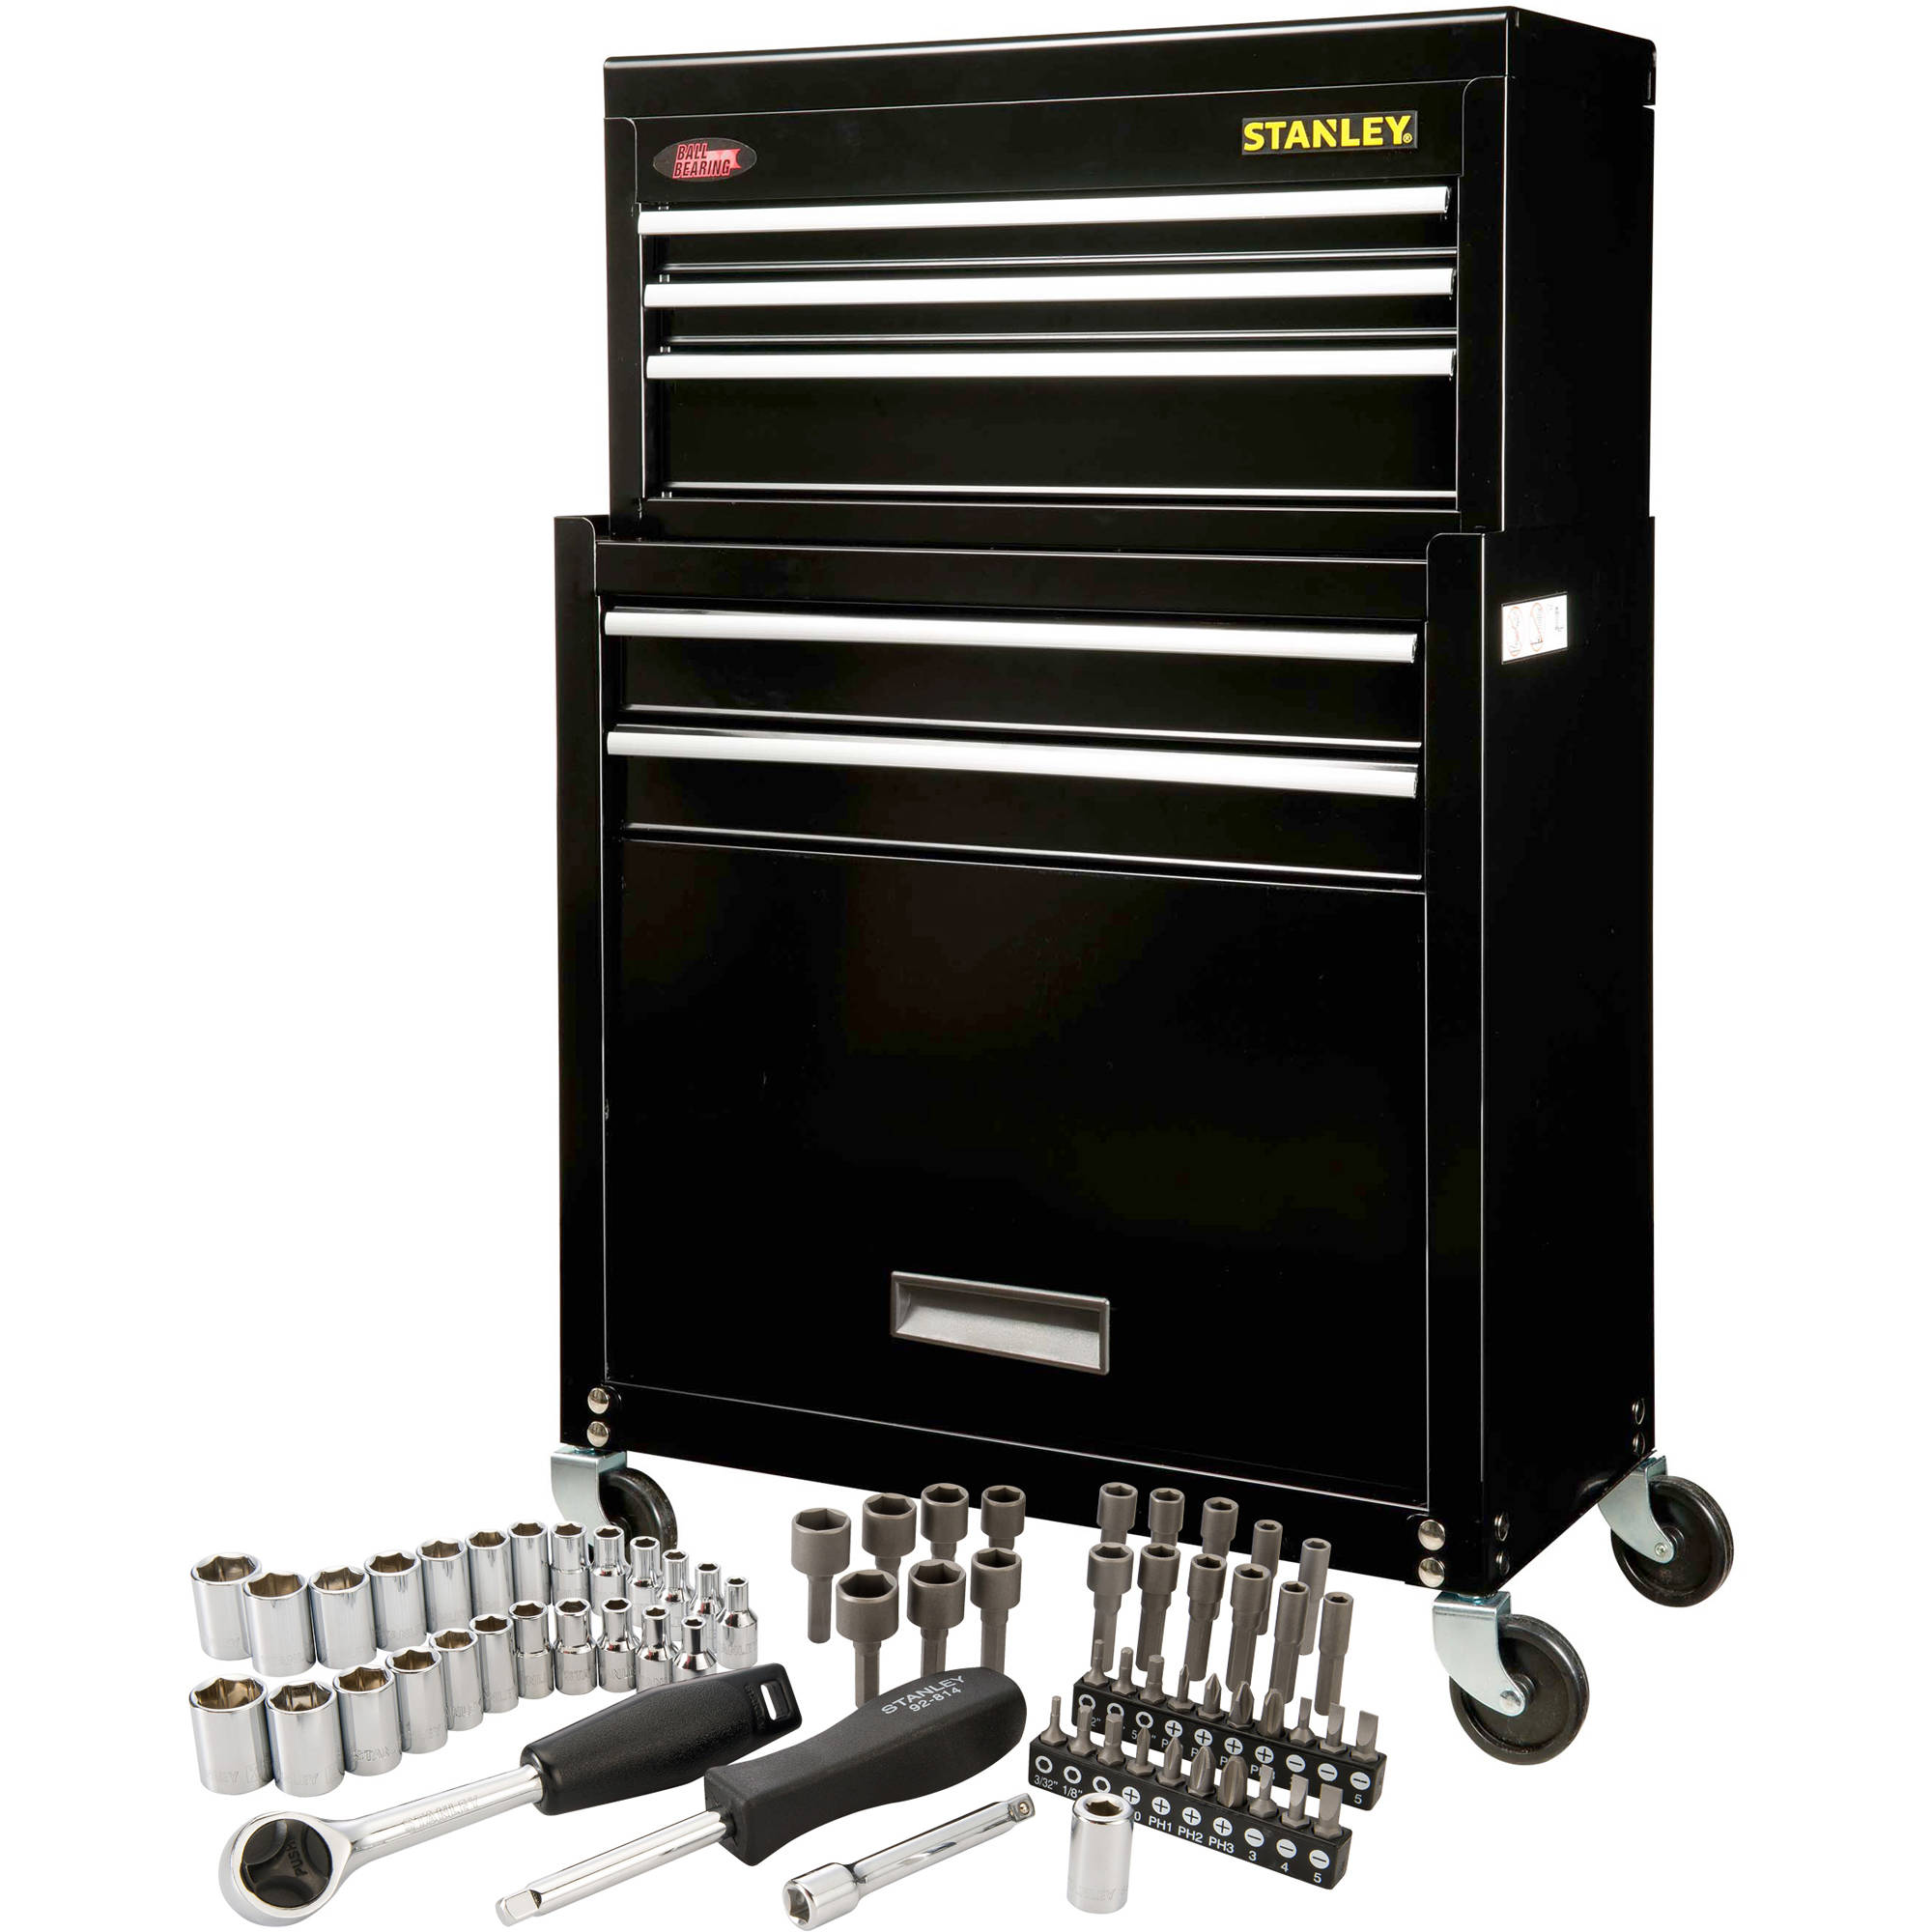 Stanley Rolling Tool Chest With Bonus 68 Piece Mechanic